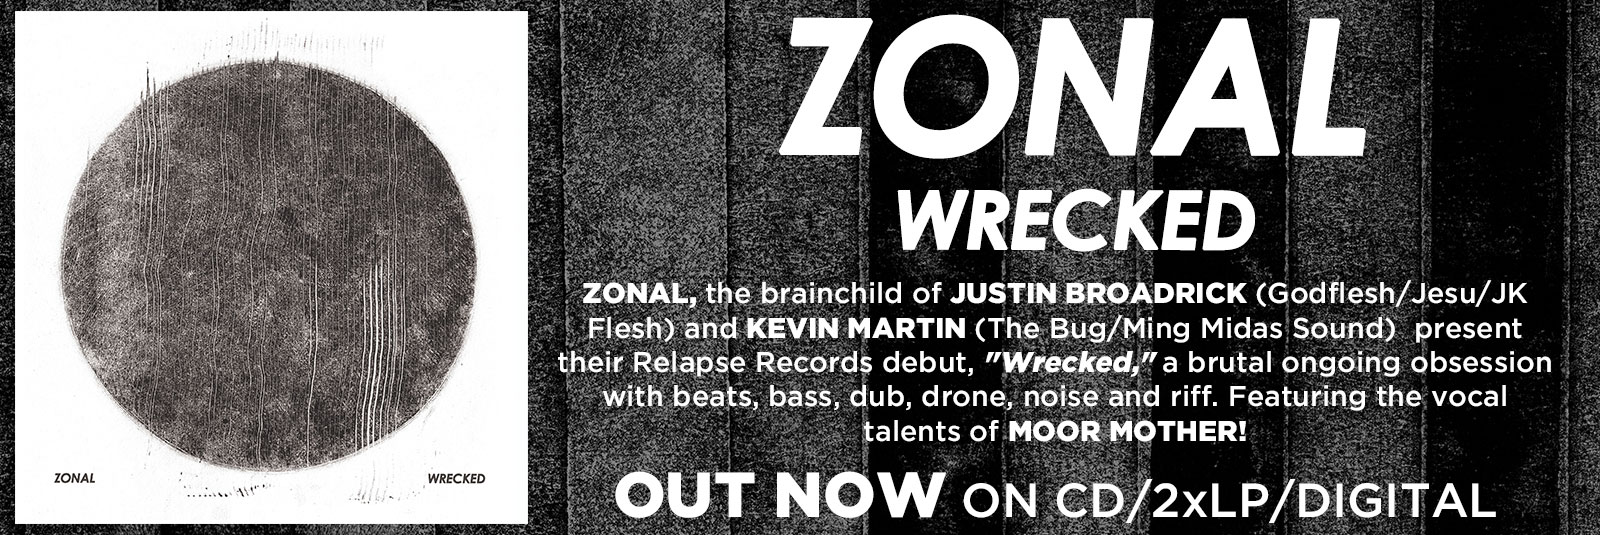 zonal-wrecked-electronic-dub-industrial-relapse-out-now